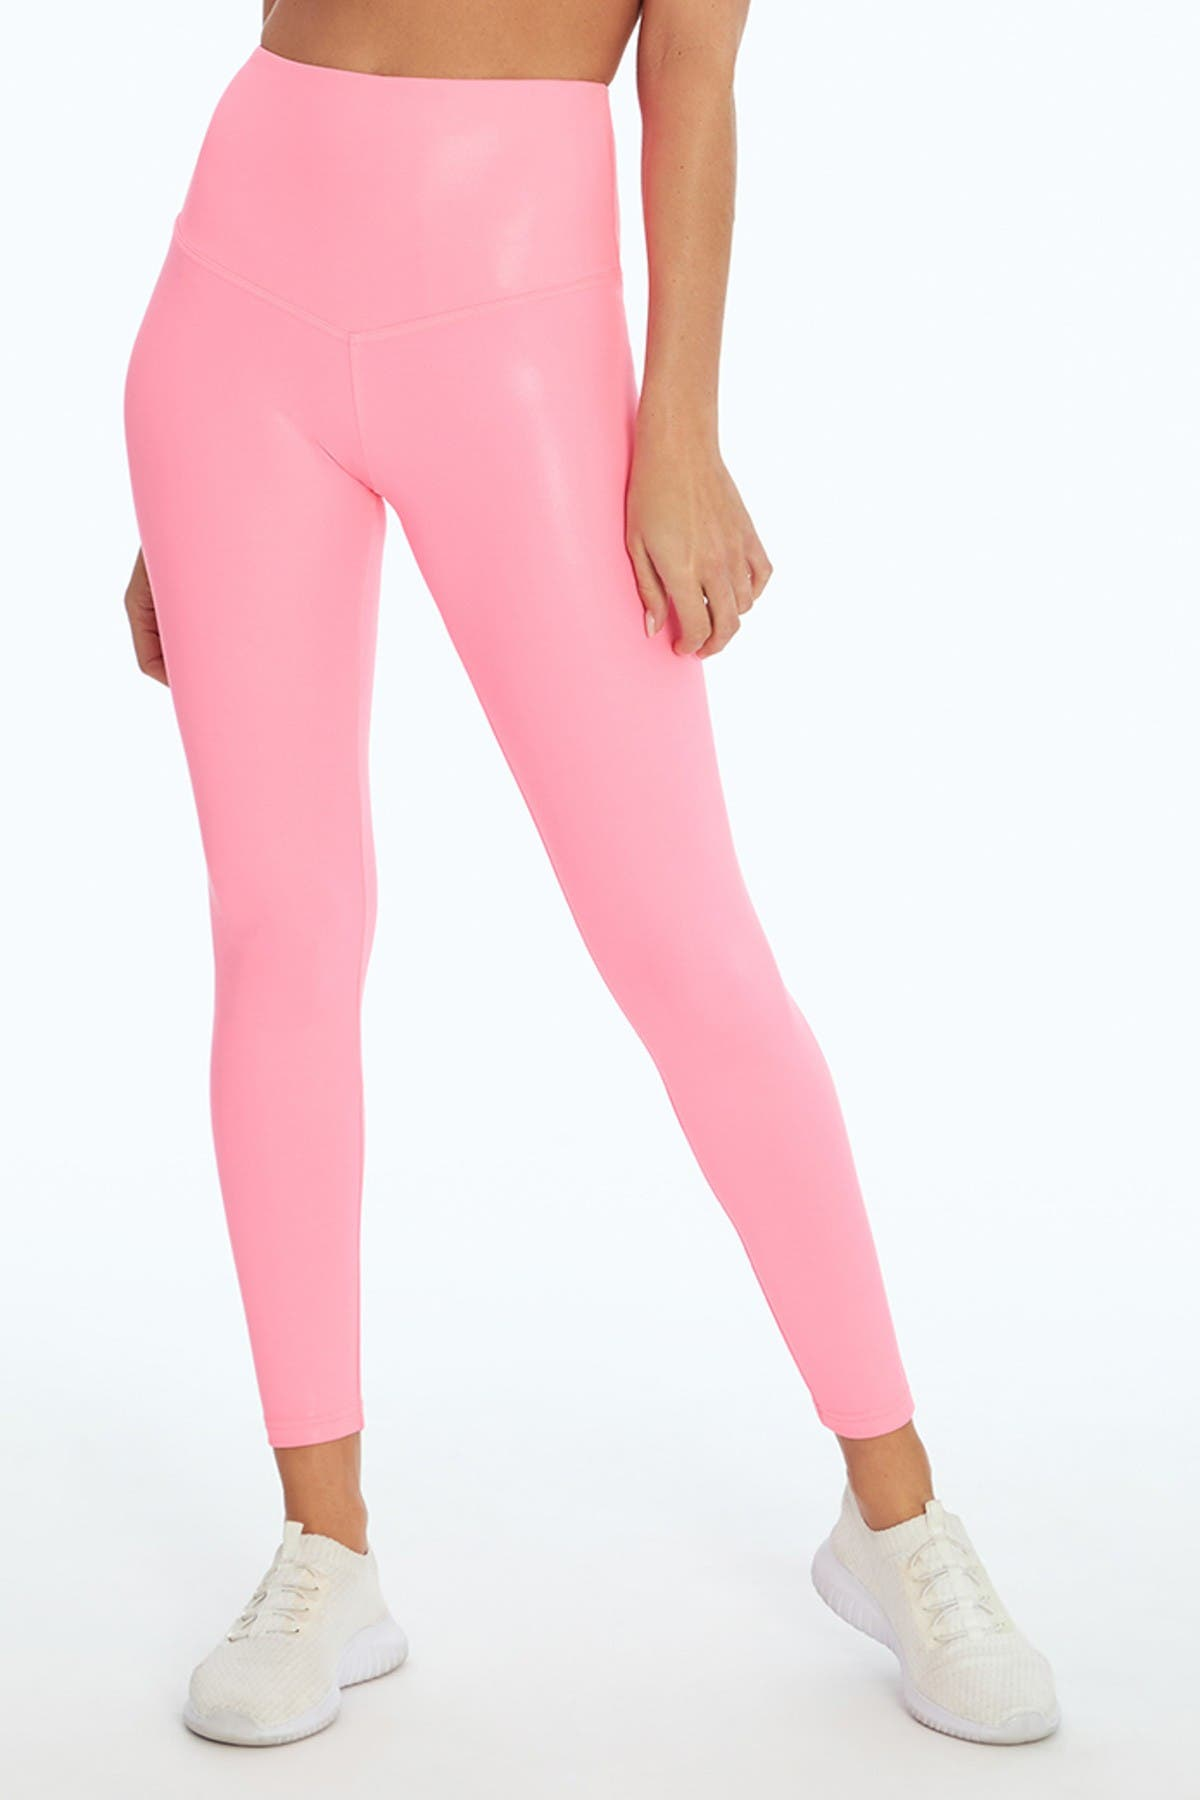 Image of CYCLE HOUSE Commuter Legging